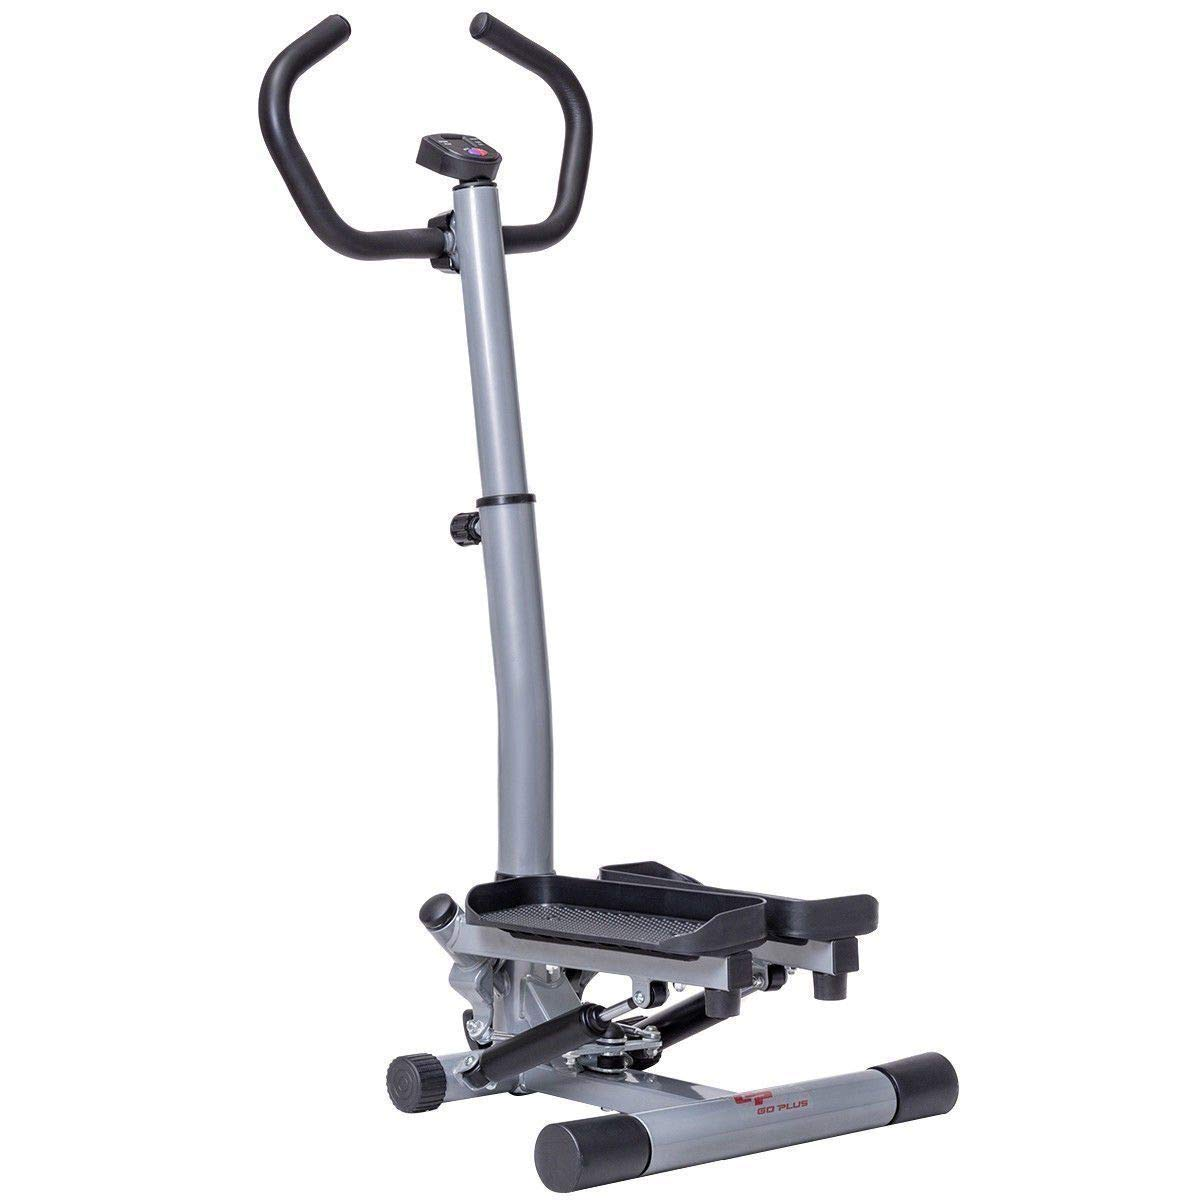 Selva Twister Stepper w/Handle Bar – 12 Level Step Machine | LCD Monitor Time Calories Count Height Adjustable Sturdy Heavy Duty Support 220Lbs | for Fitness Workout Exercise Thigh Buttock Bone Joint by Selva (Image #8)